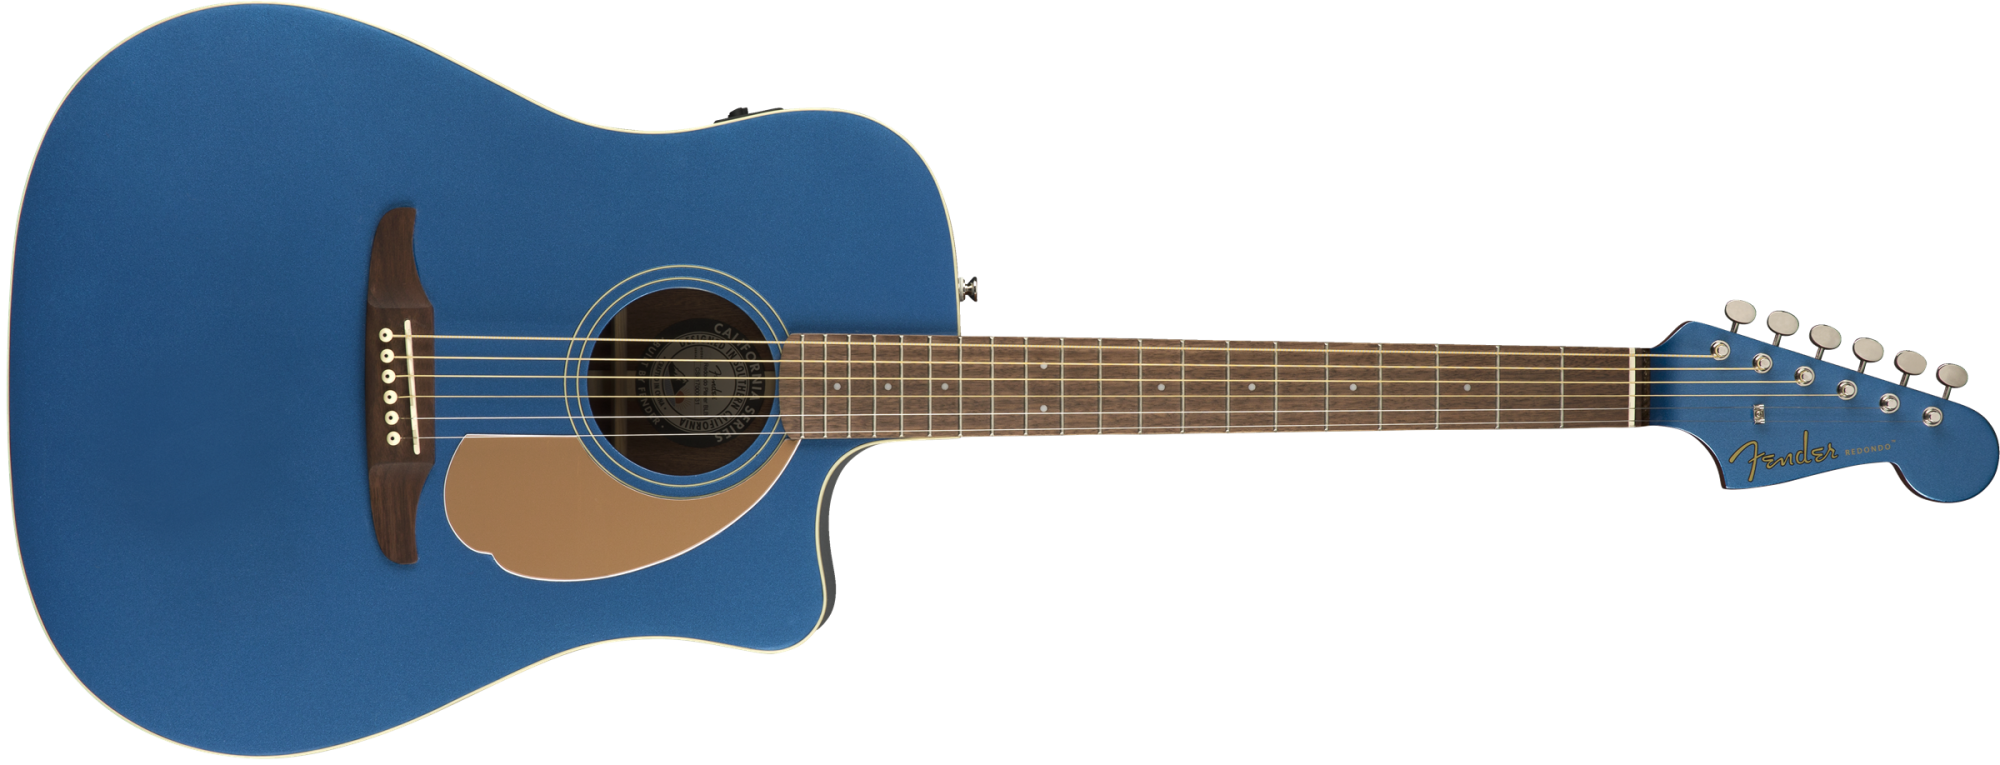 Fender Redondo Player Acoustic